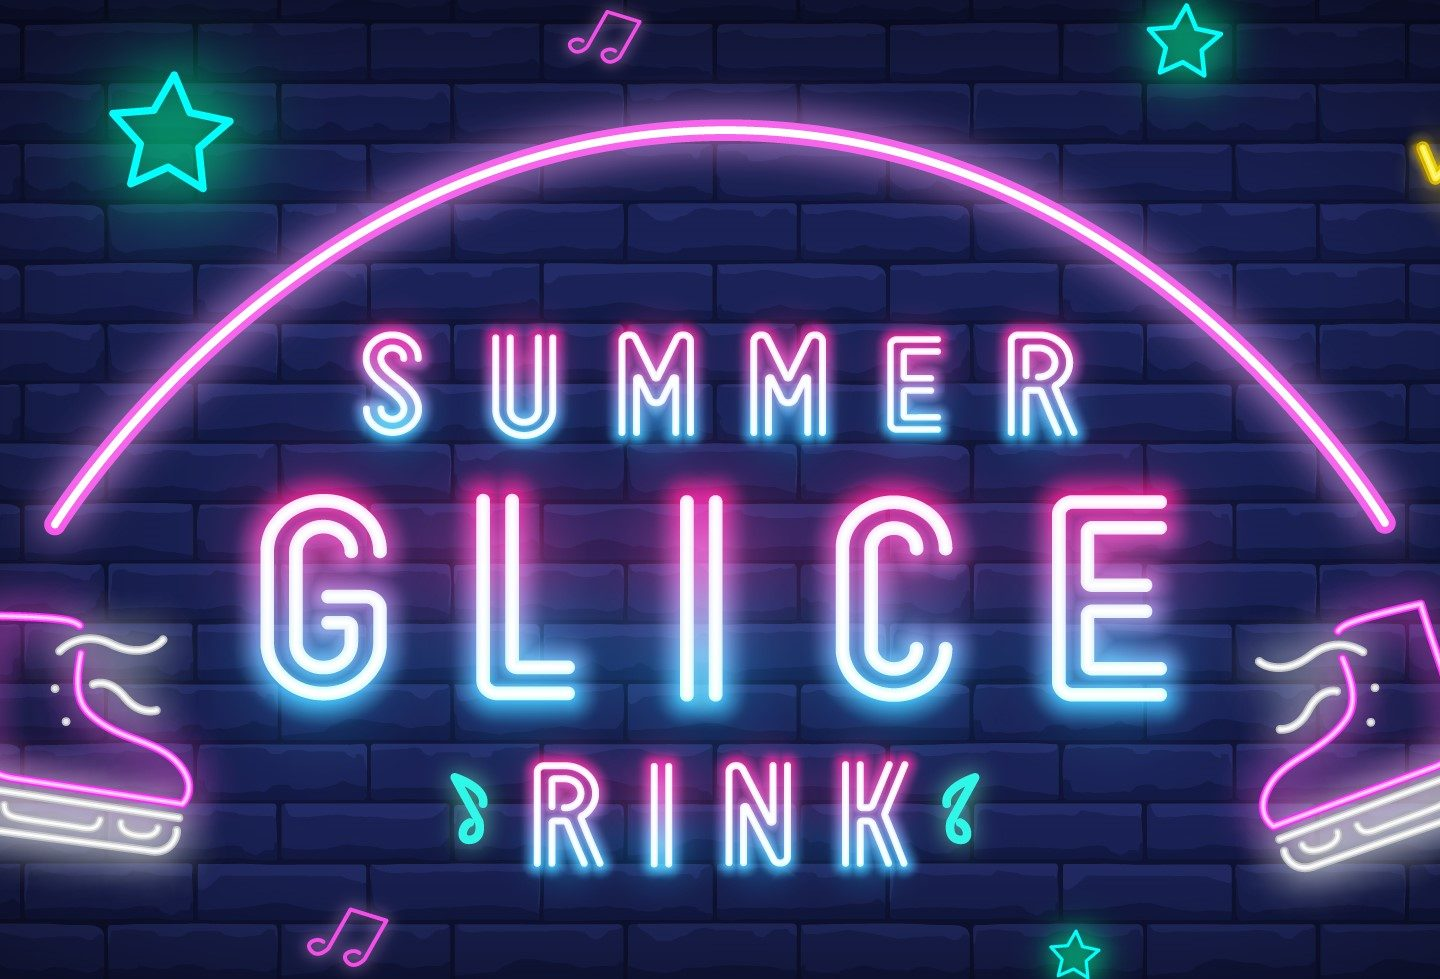 Enter to Win 4 x Tickets to the Capegate Summer Glice Rink